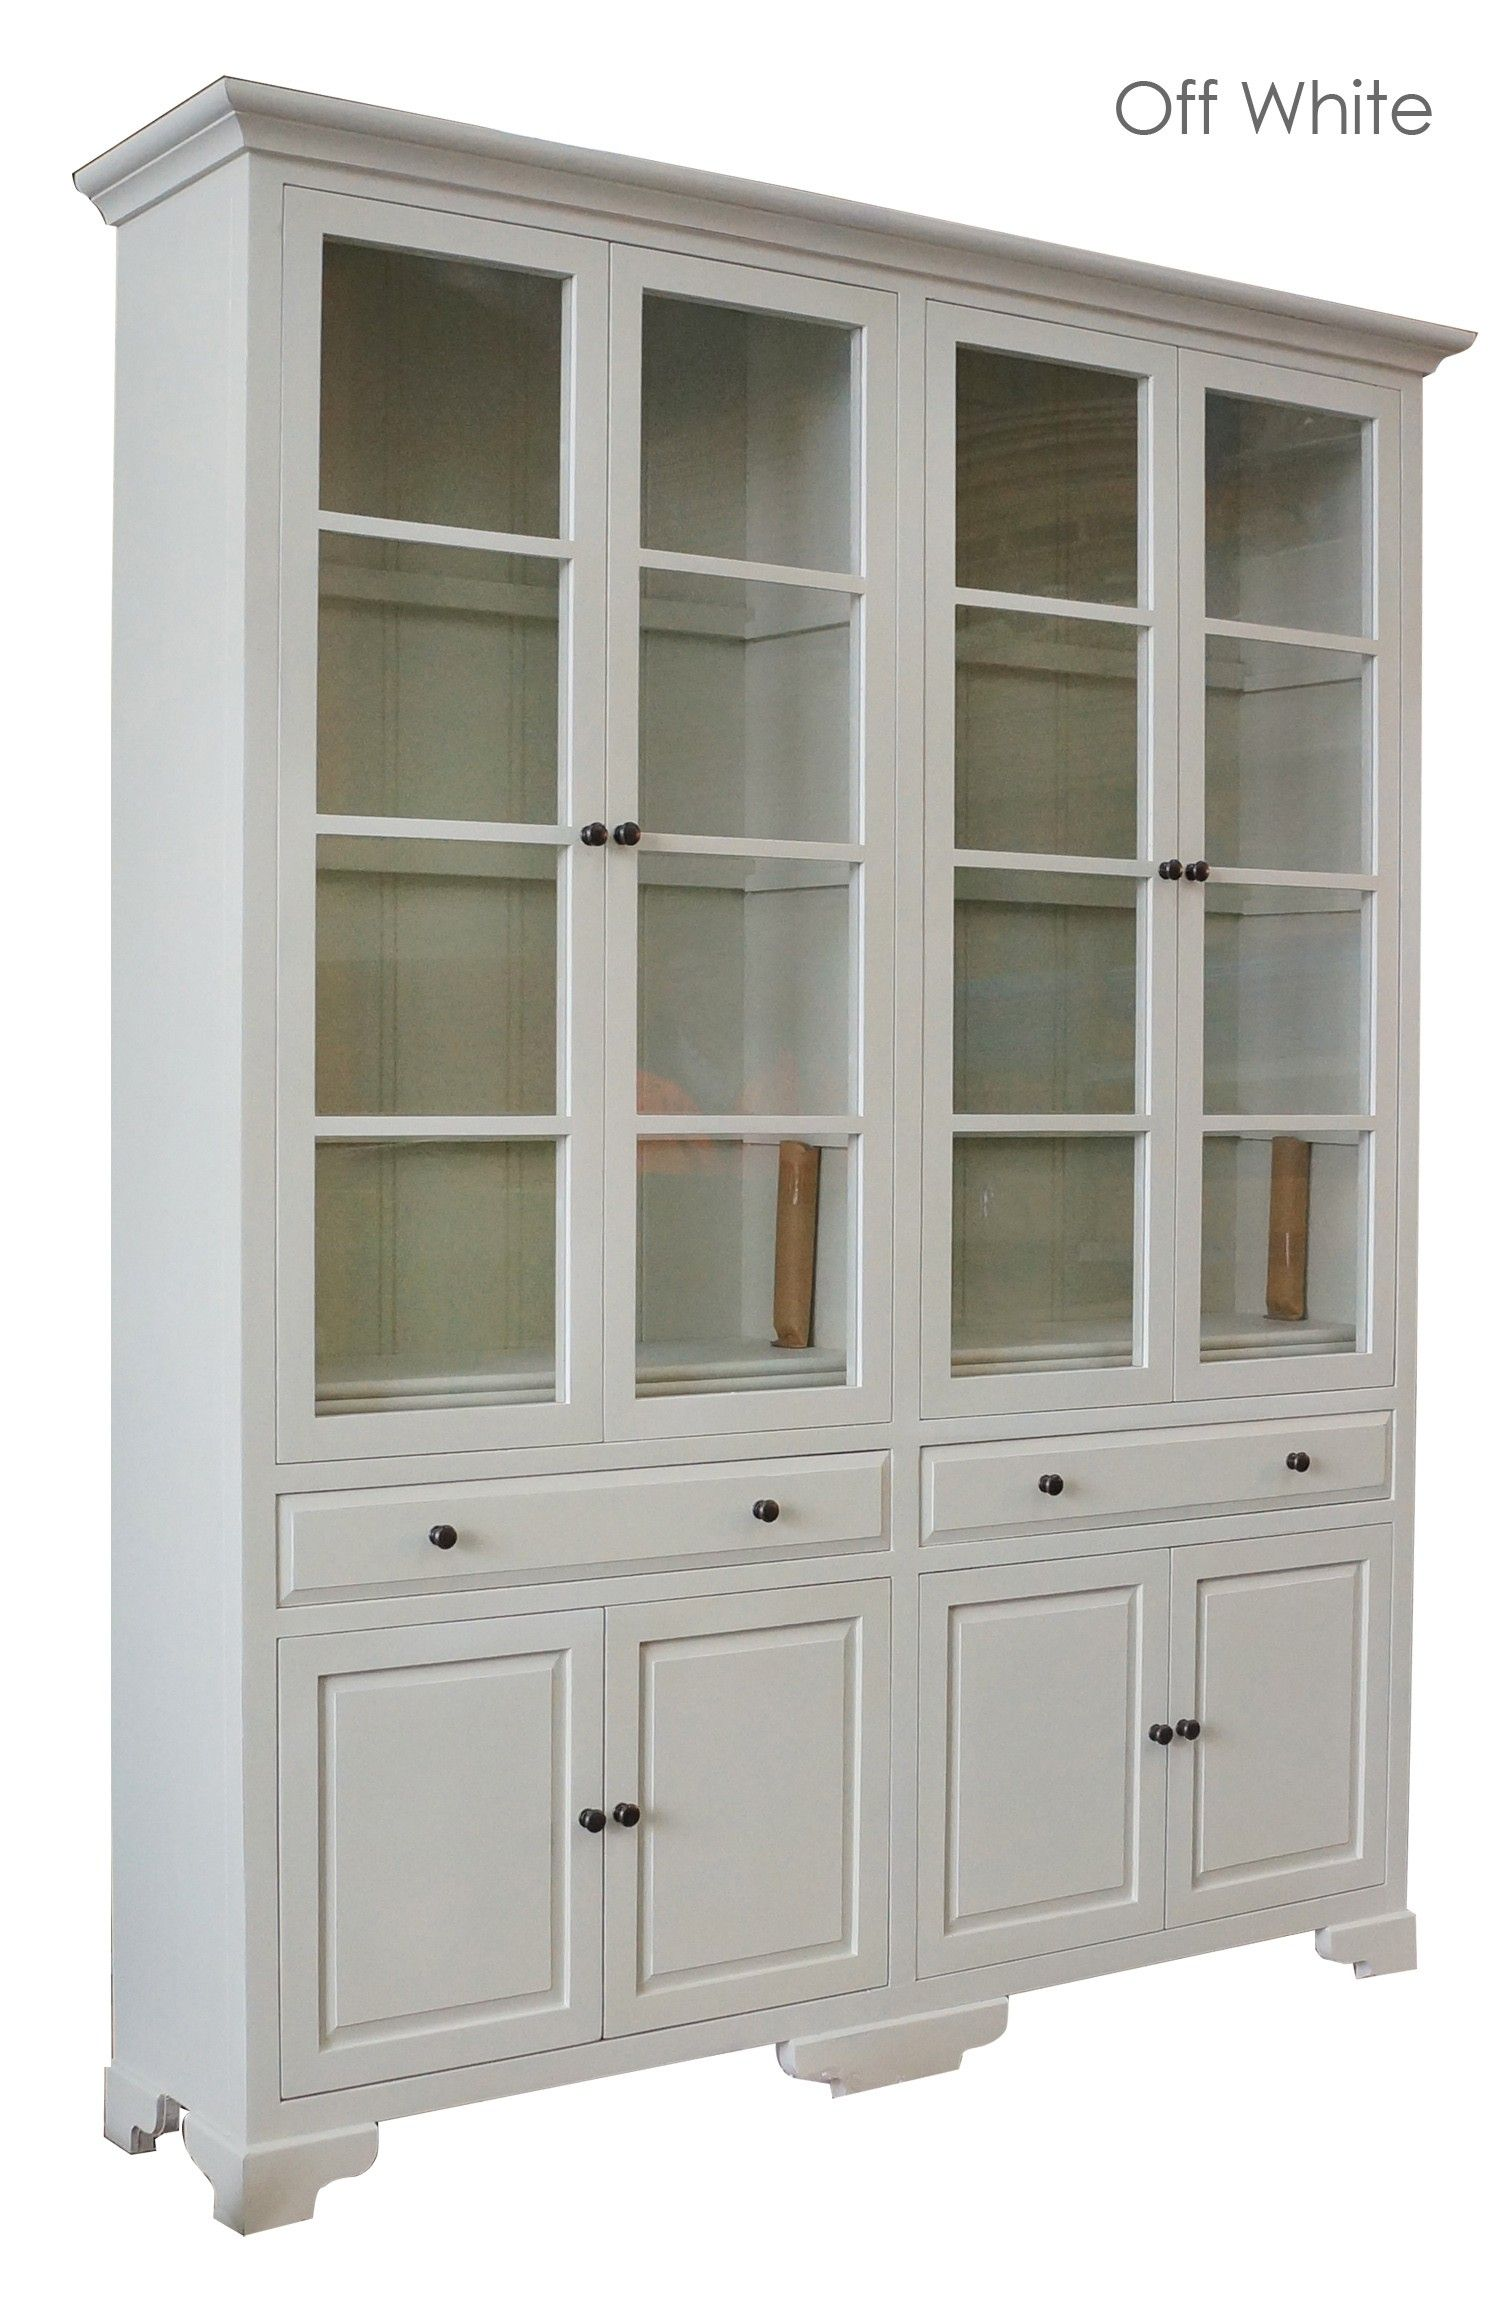 French Provincial Classic Display Cabinet With Tempered Glass In Off White White Cupboards